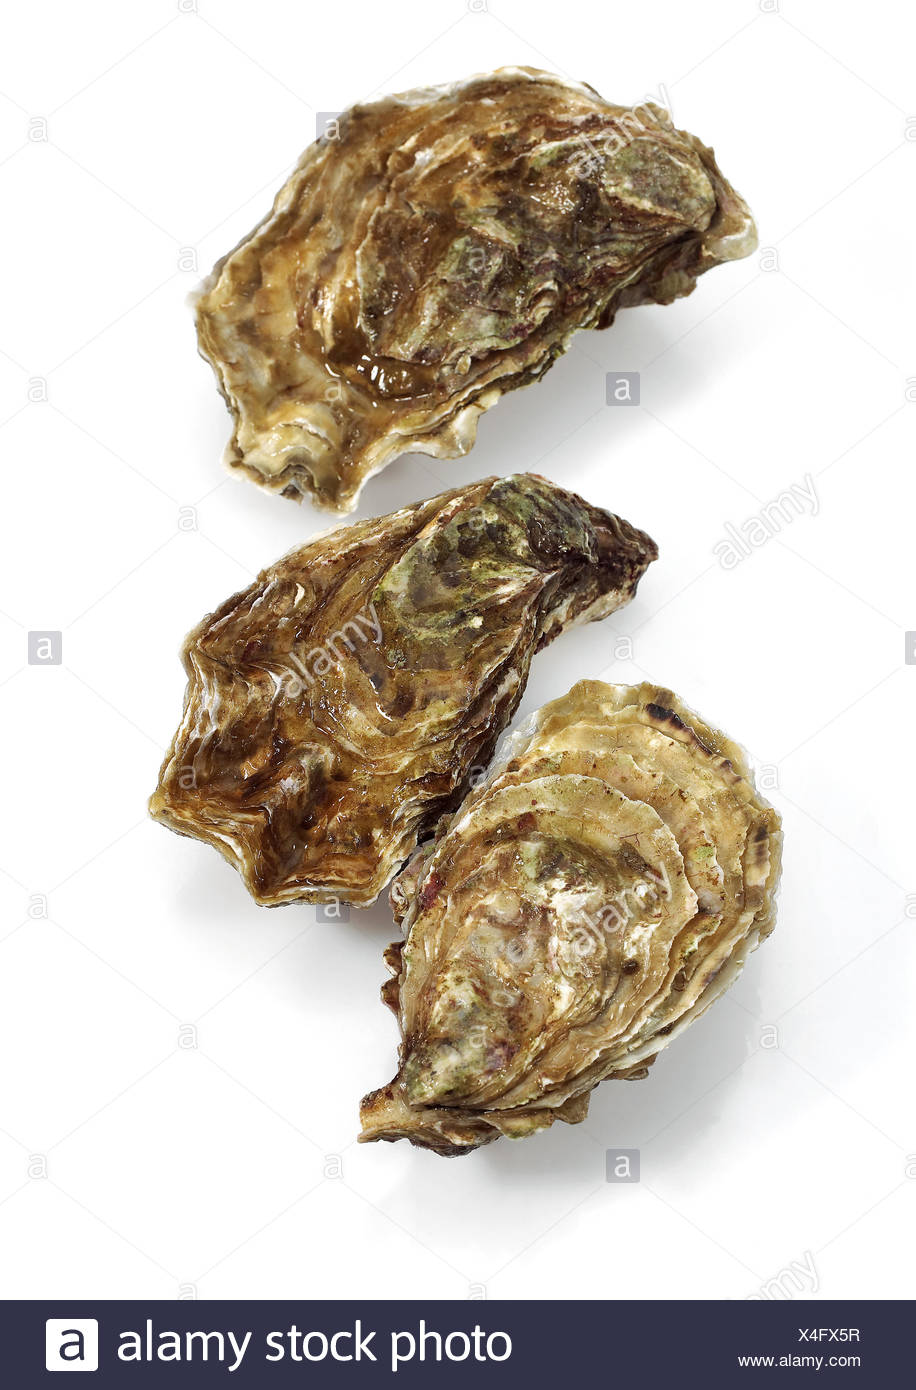 French Oyster Called Marennes d'Oleron, ostrea edulis, Seafoods against White Background 065173 Gerard LACZ Images - Stock Image